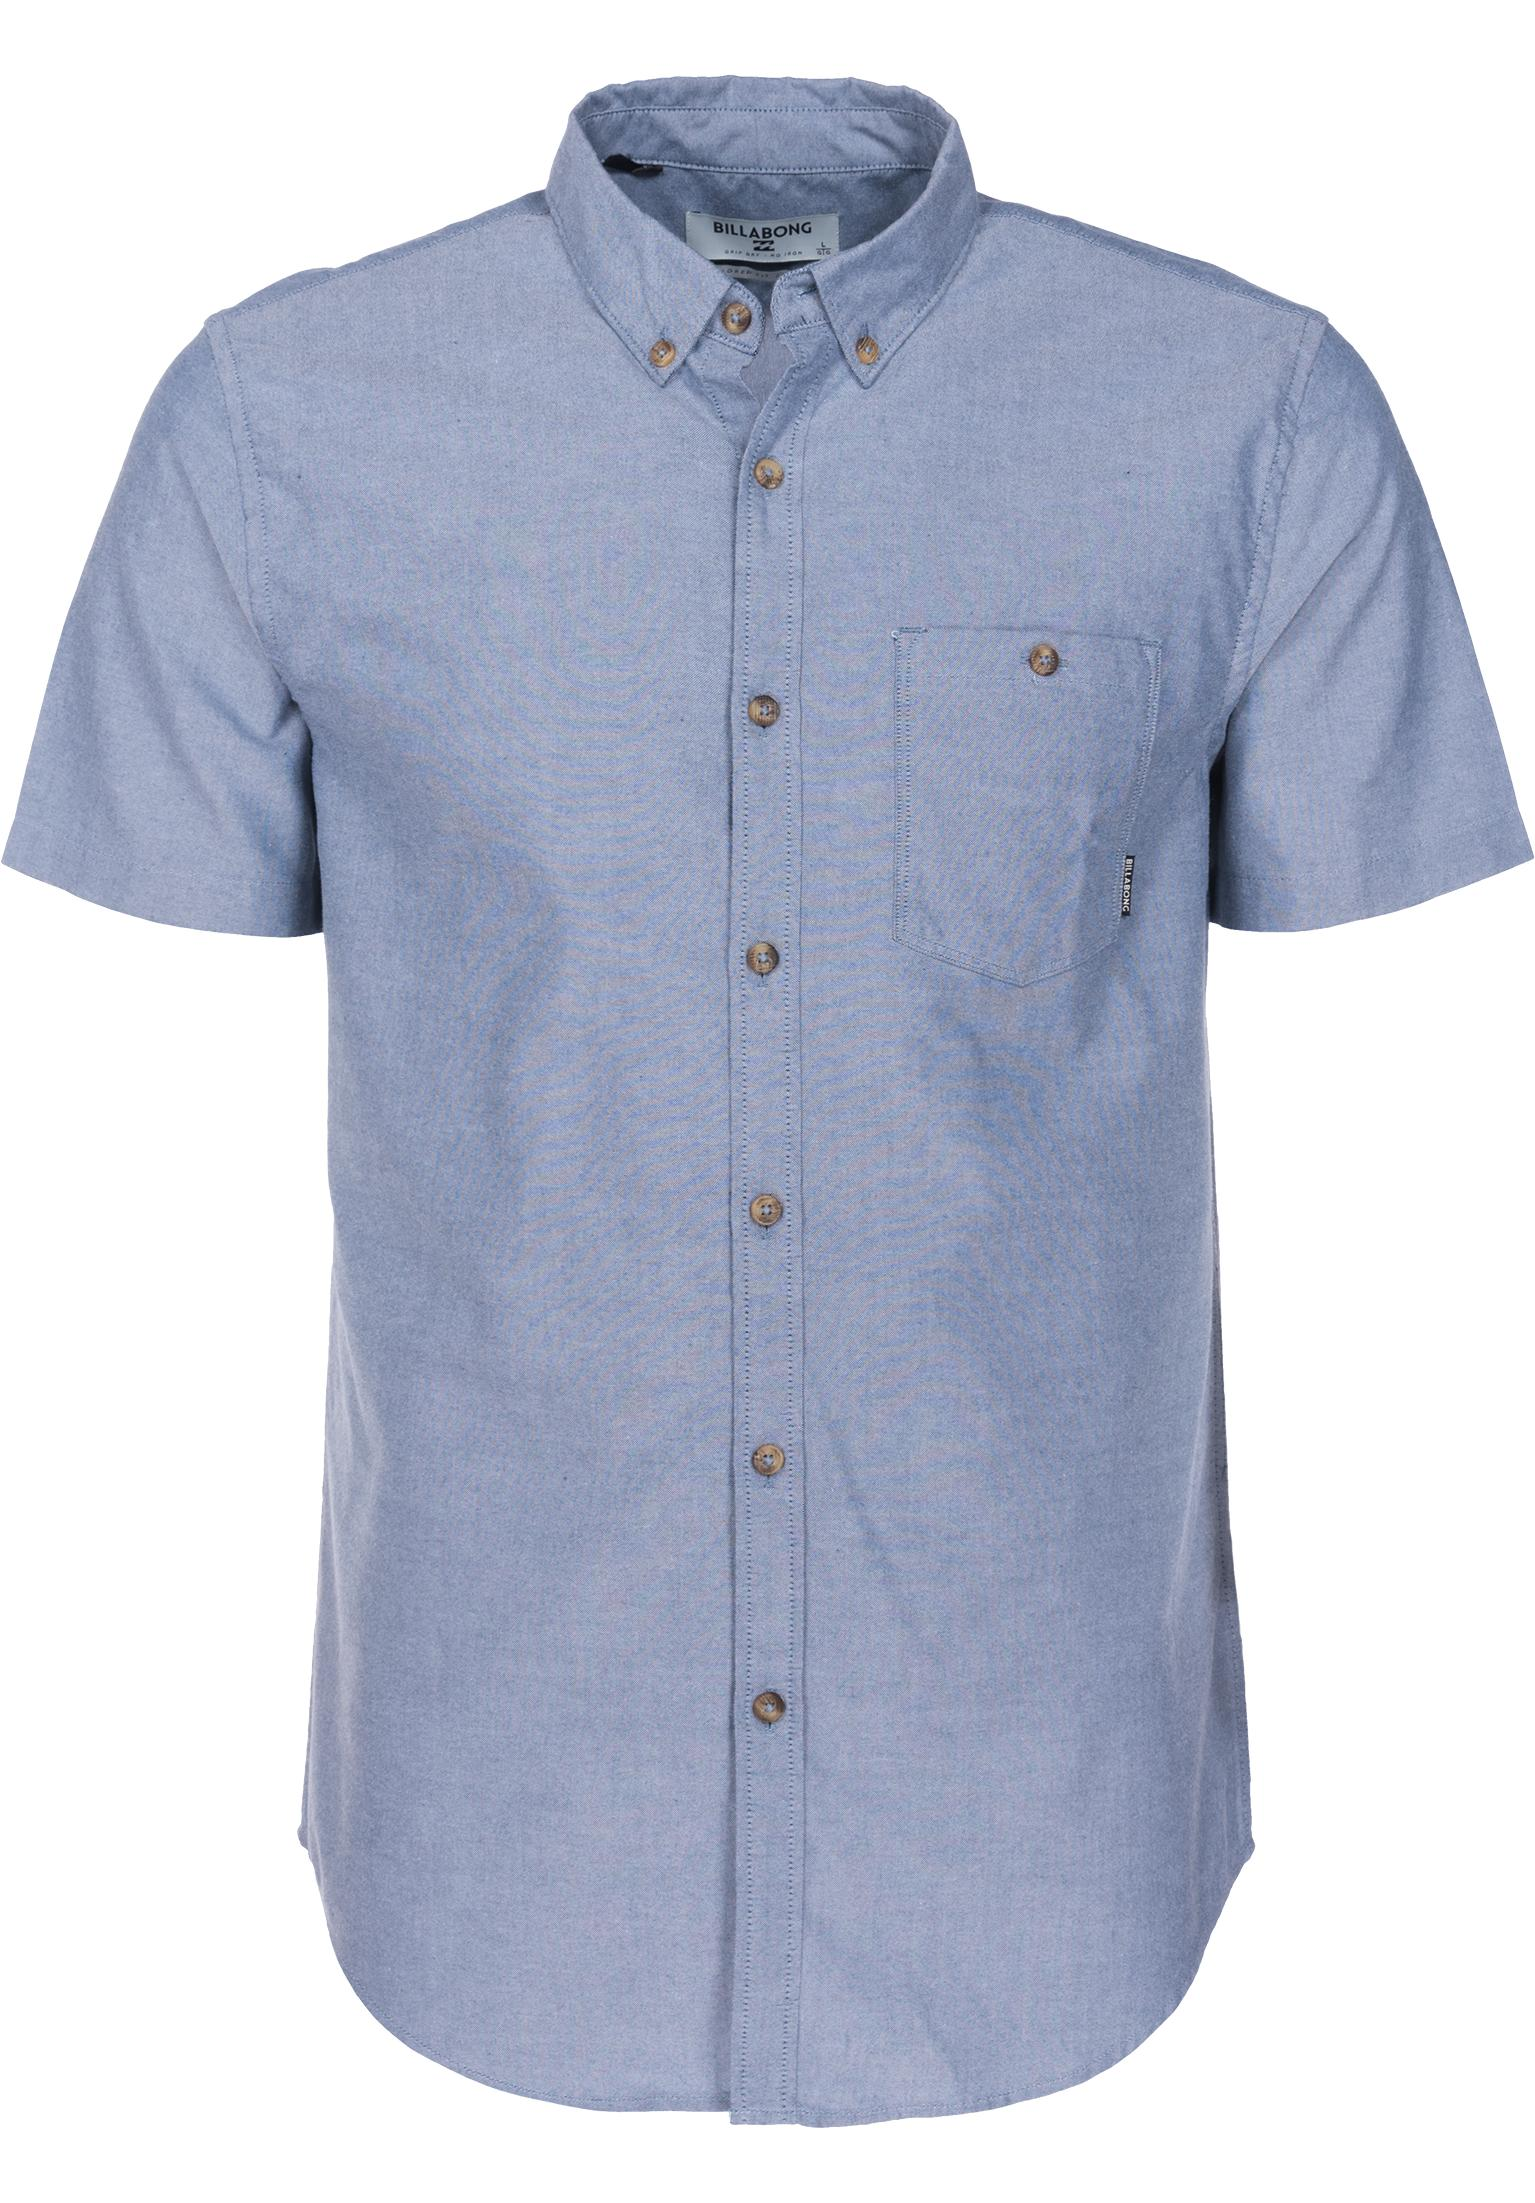 billabong hemden kurzarm all day oxford blue vorderansicht jpg